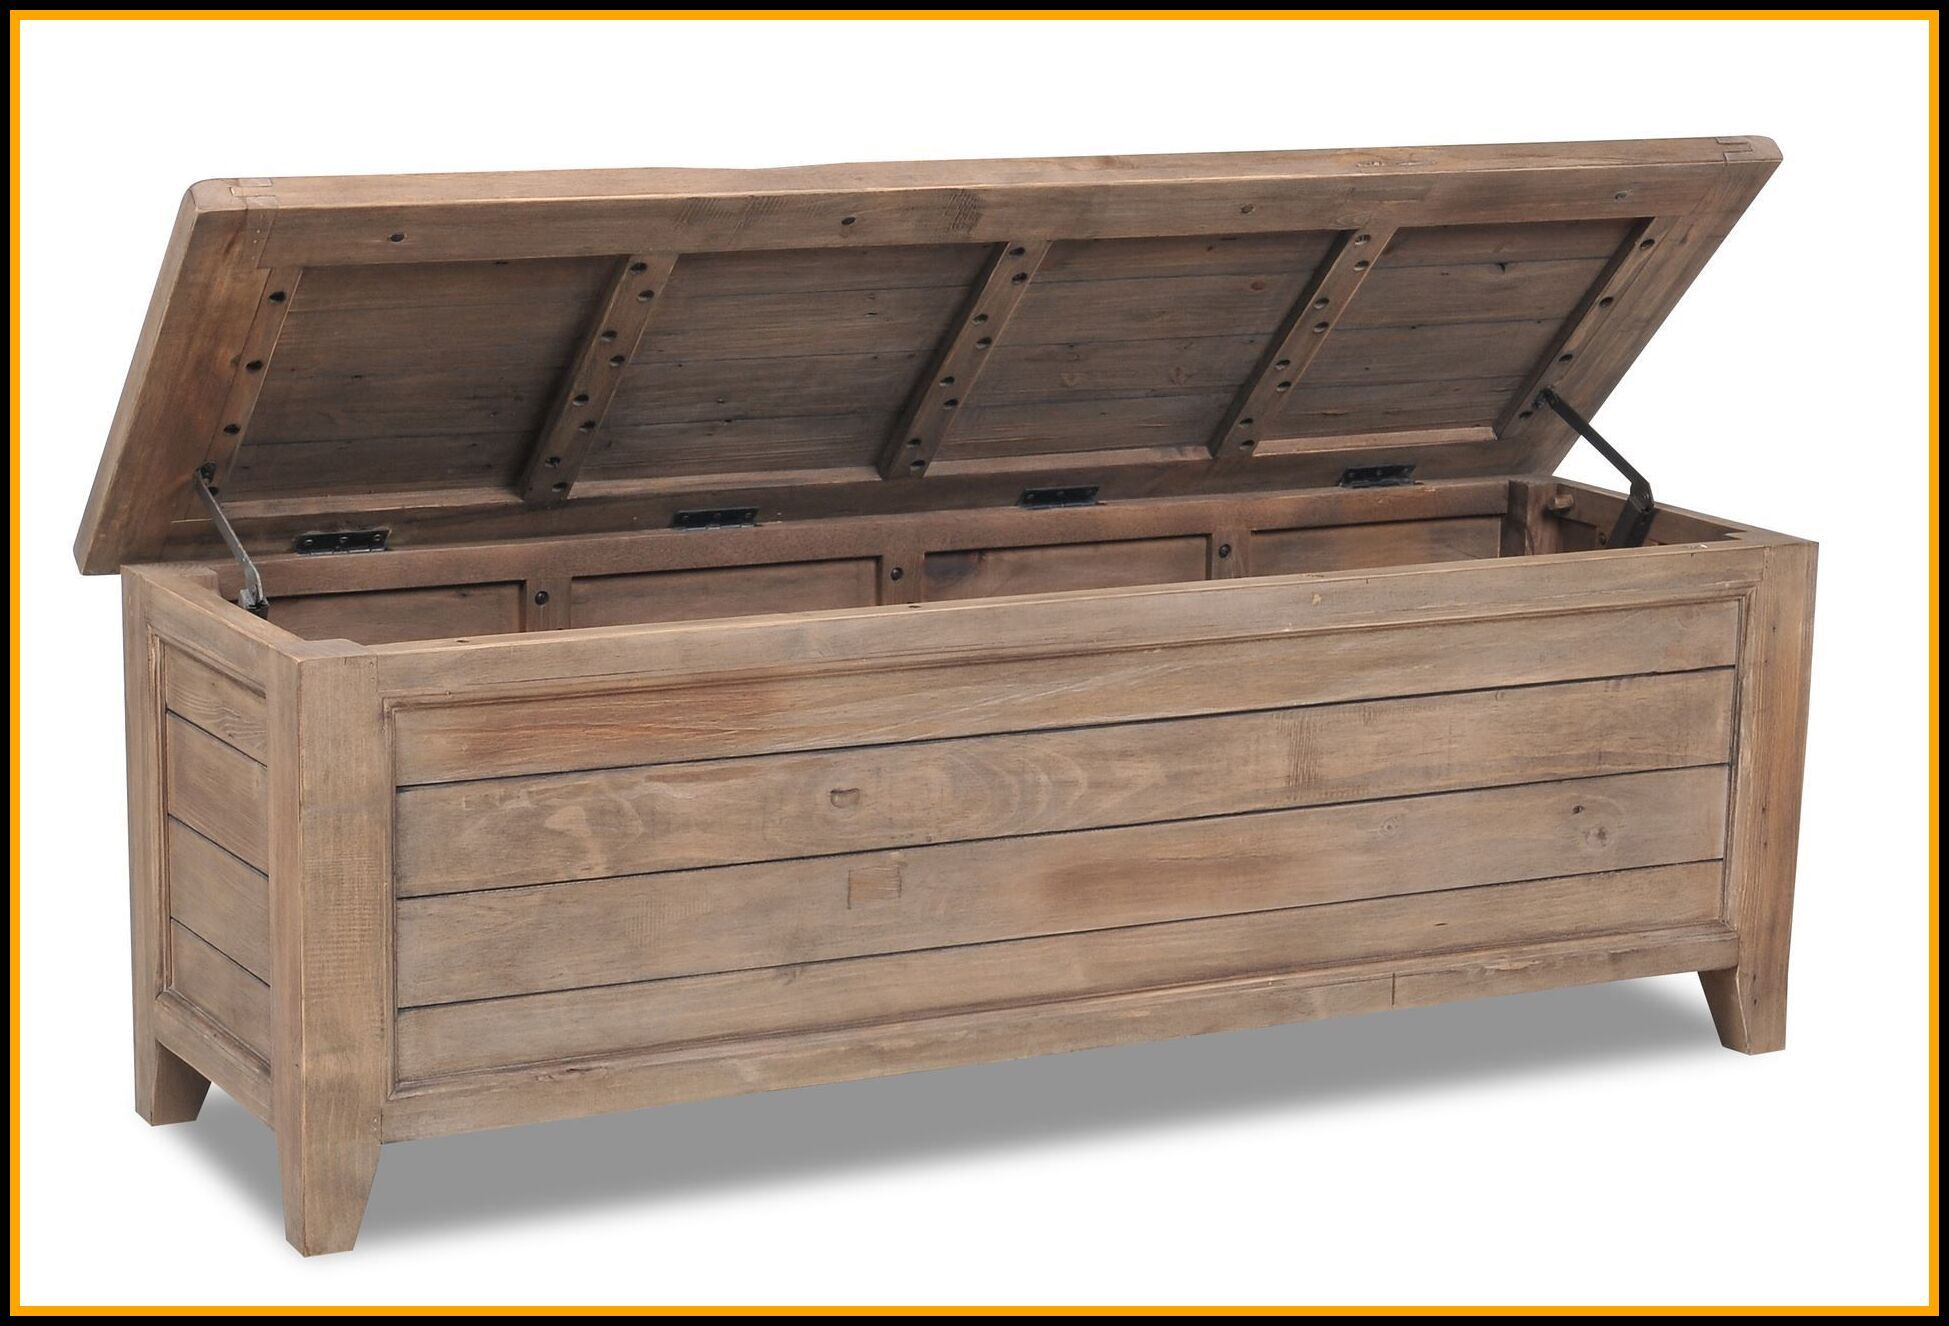 5 reference of bedroom bench storage box in 5  Bench with